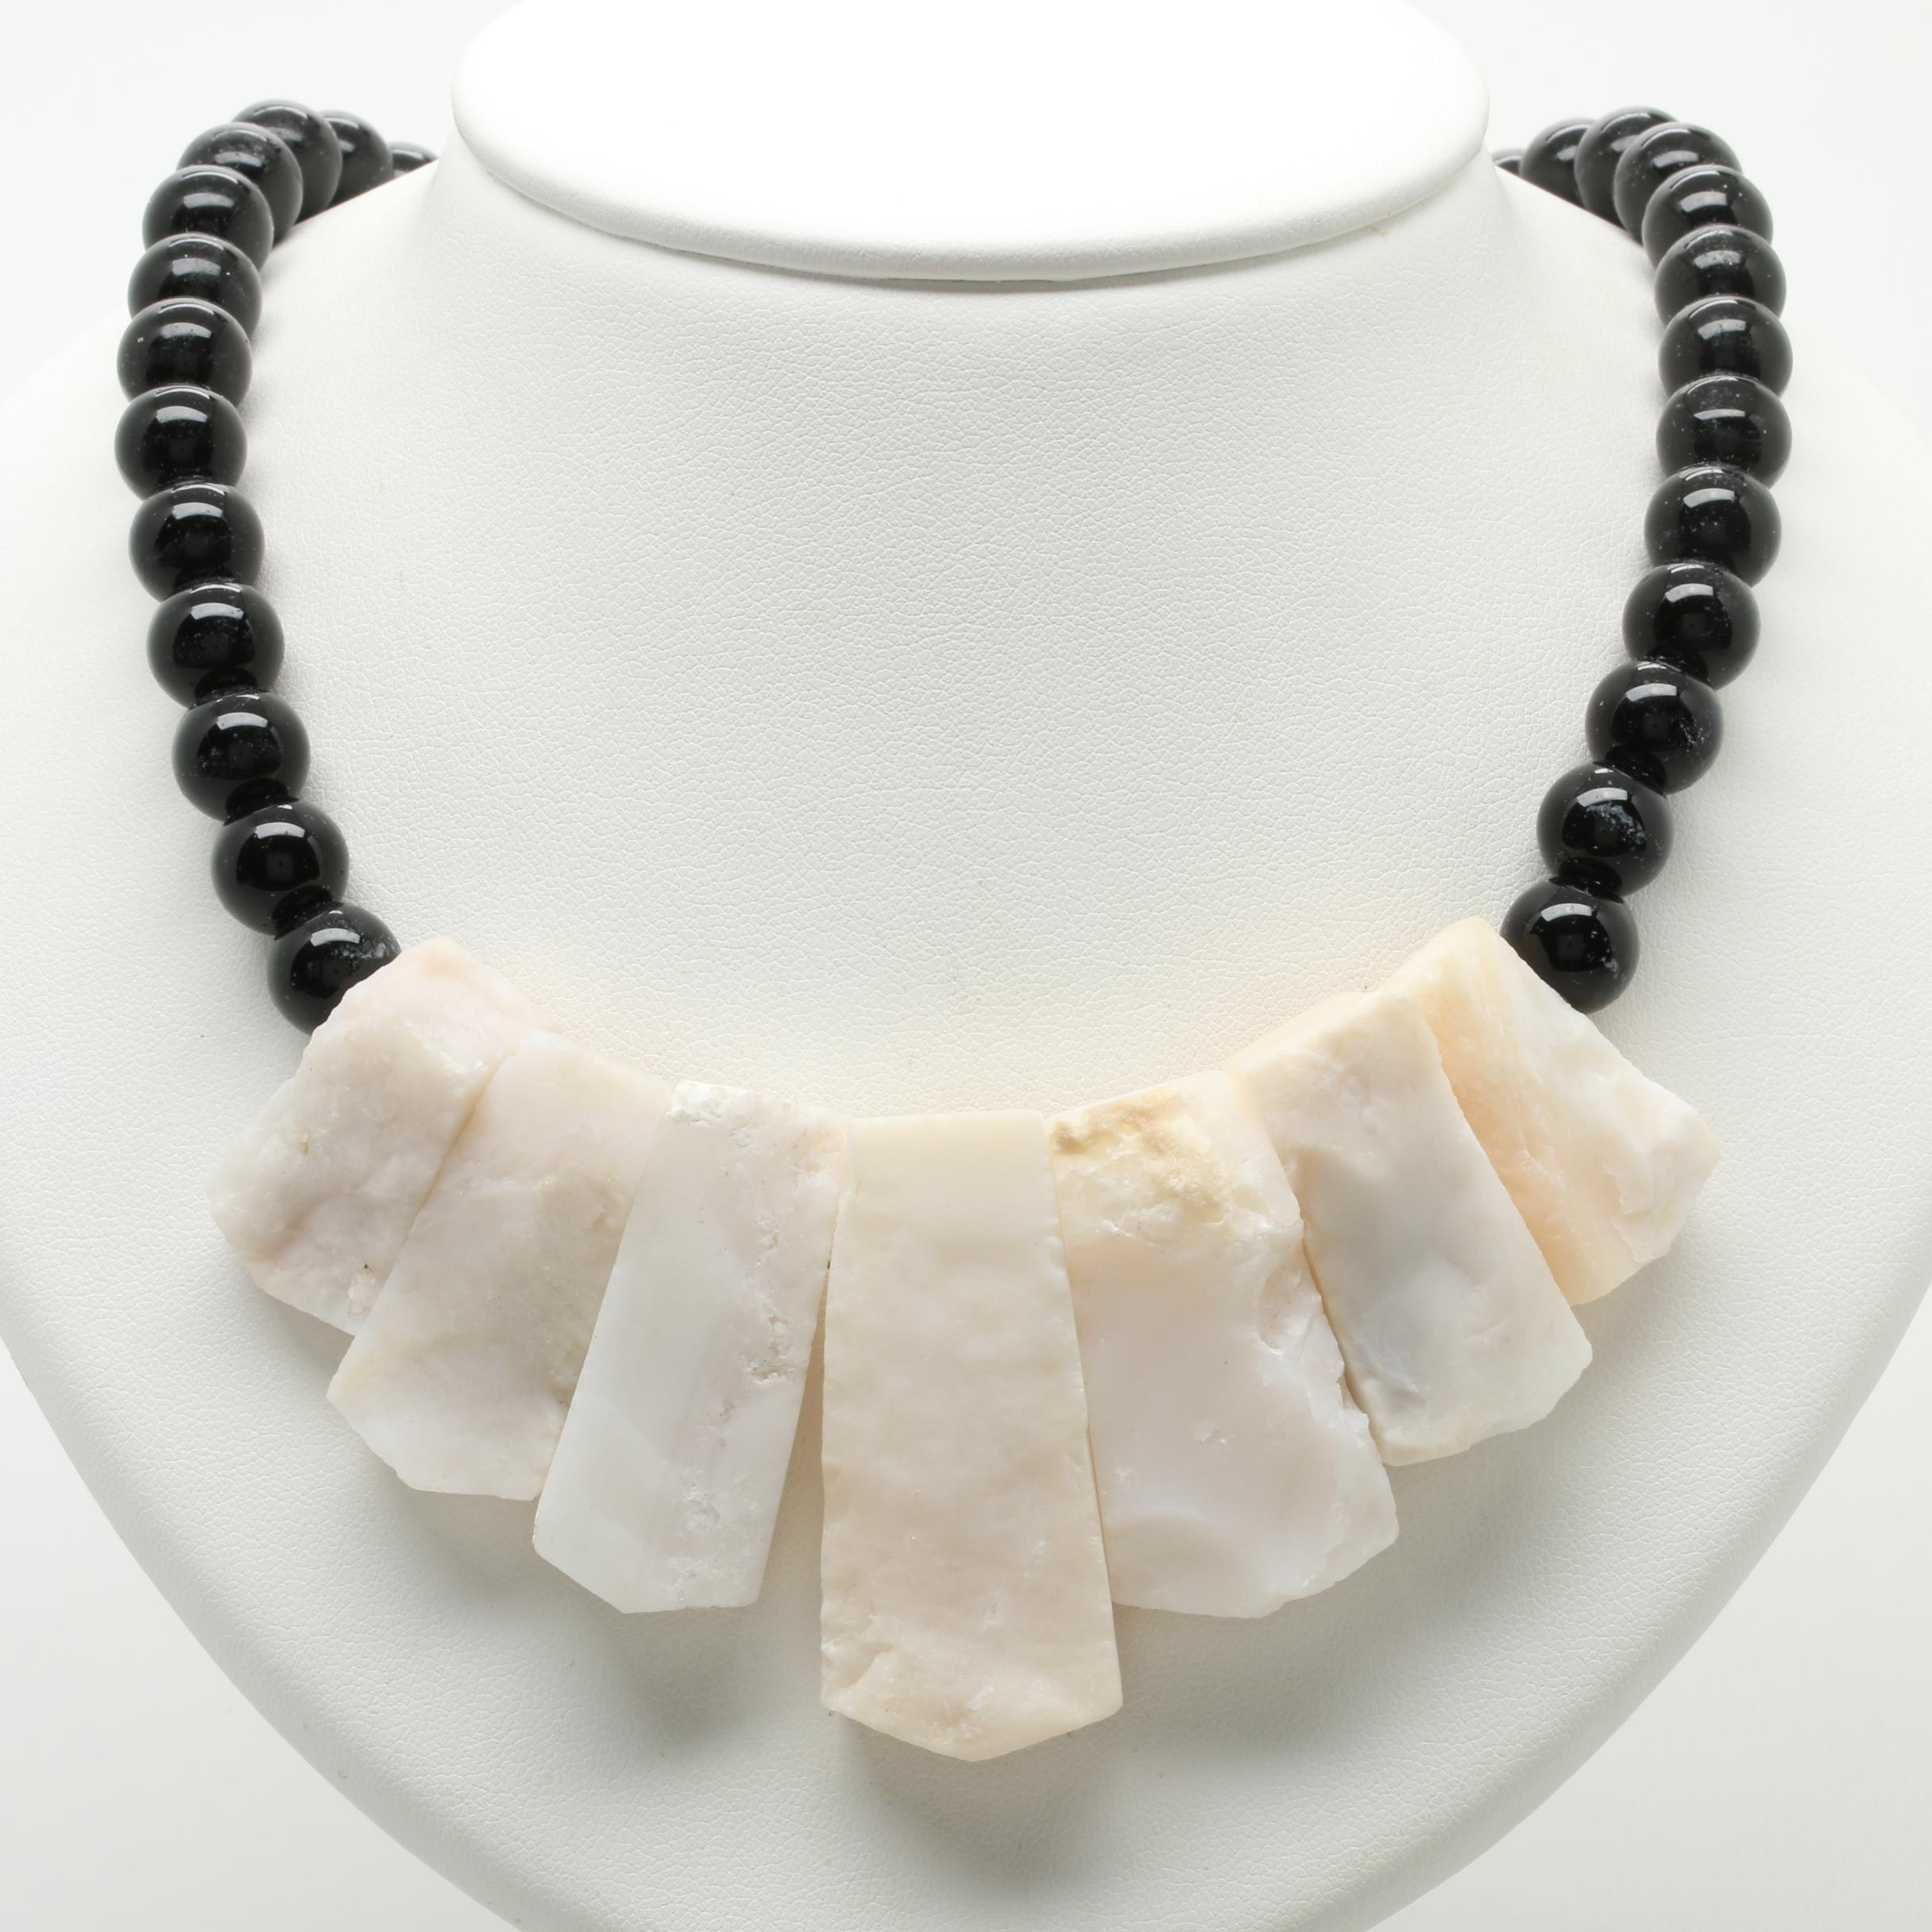 Silver Tone Marble and Black Onyx Necklace